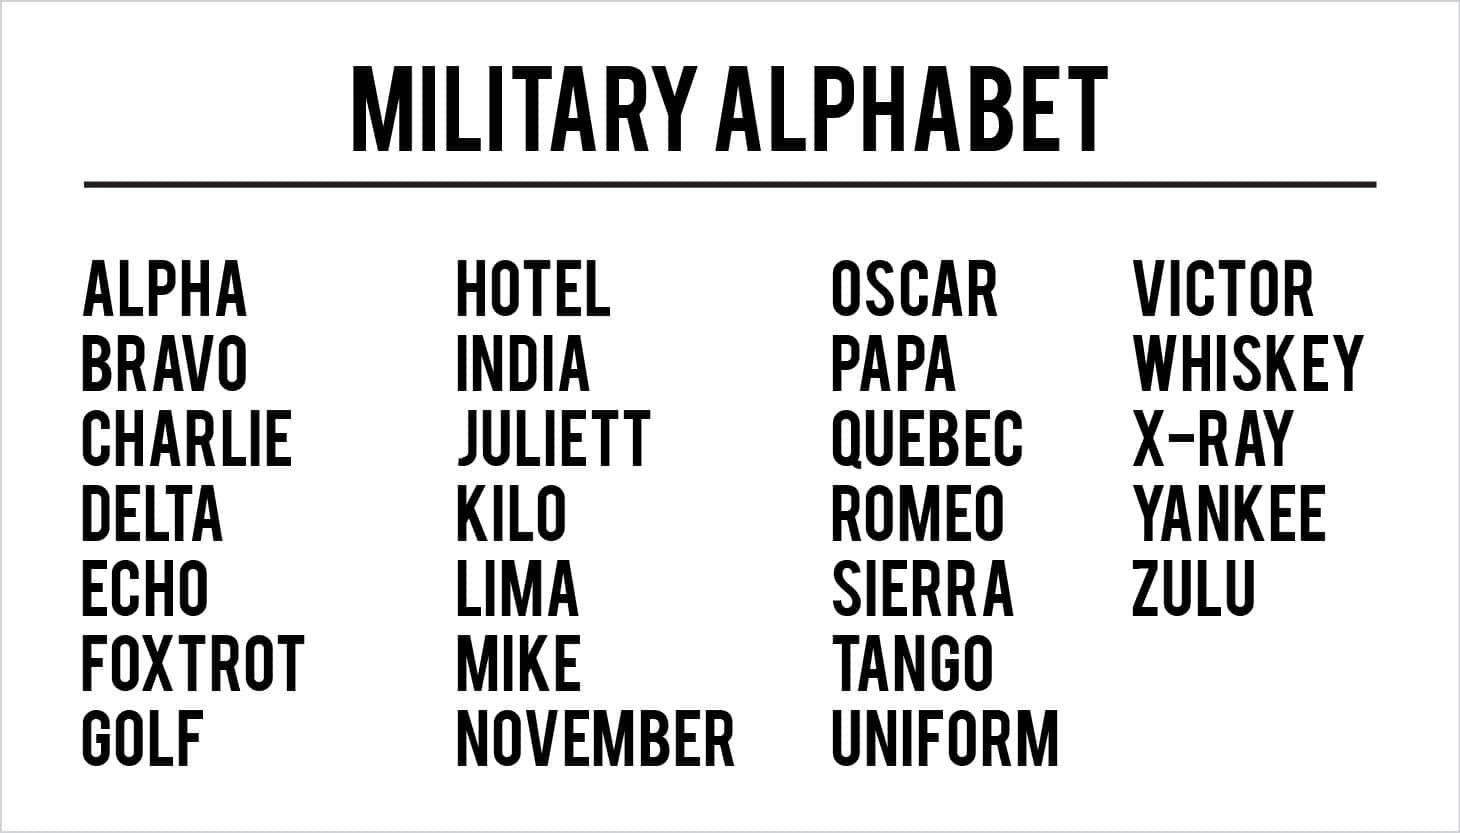 Military Alphabet Chart - Free HD Images